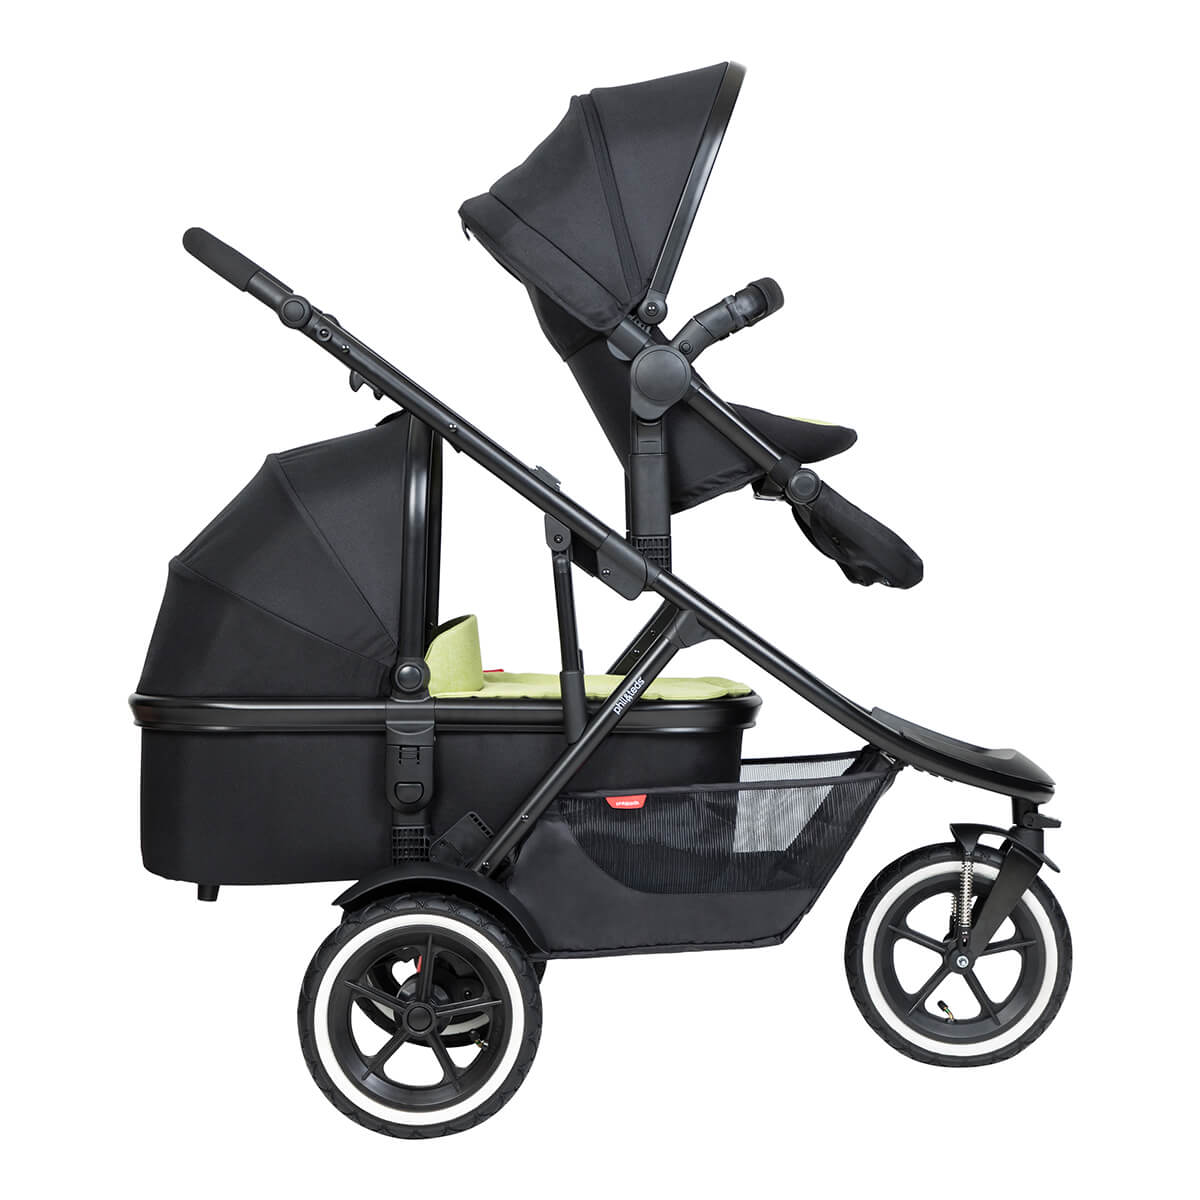 https://cdn.accentuate.io/4509866721377/19793939726506/philteds-sport-buggy-with-double-kit-extended-clip-and-snug-carrycot-side-view-v1626485340544.jpg?1200x1200